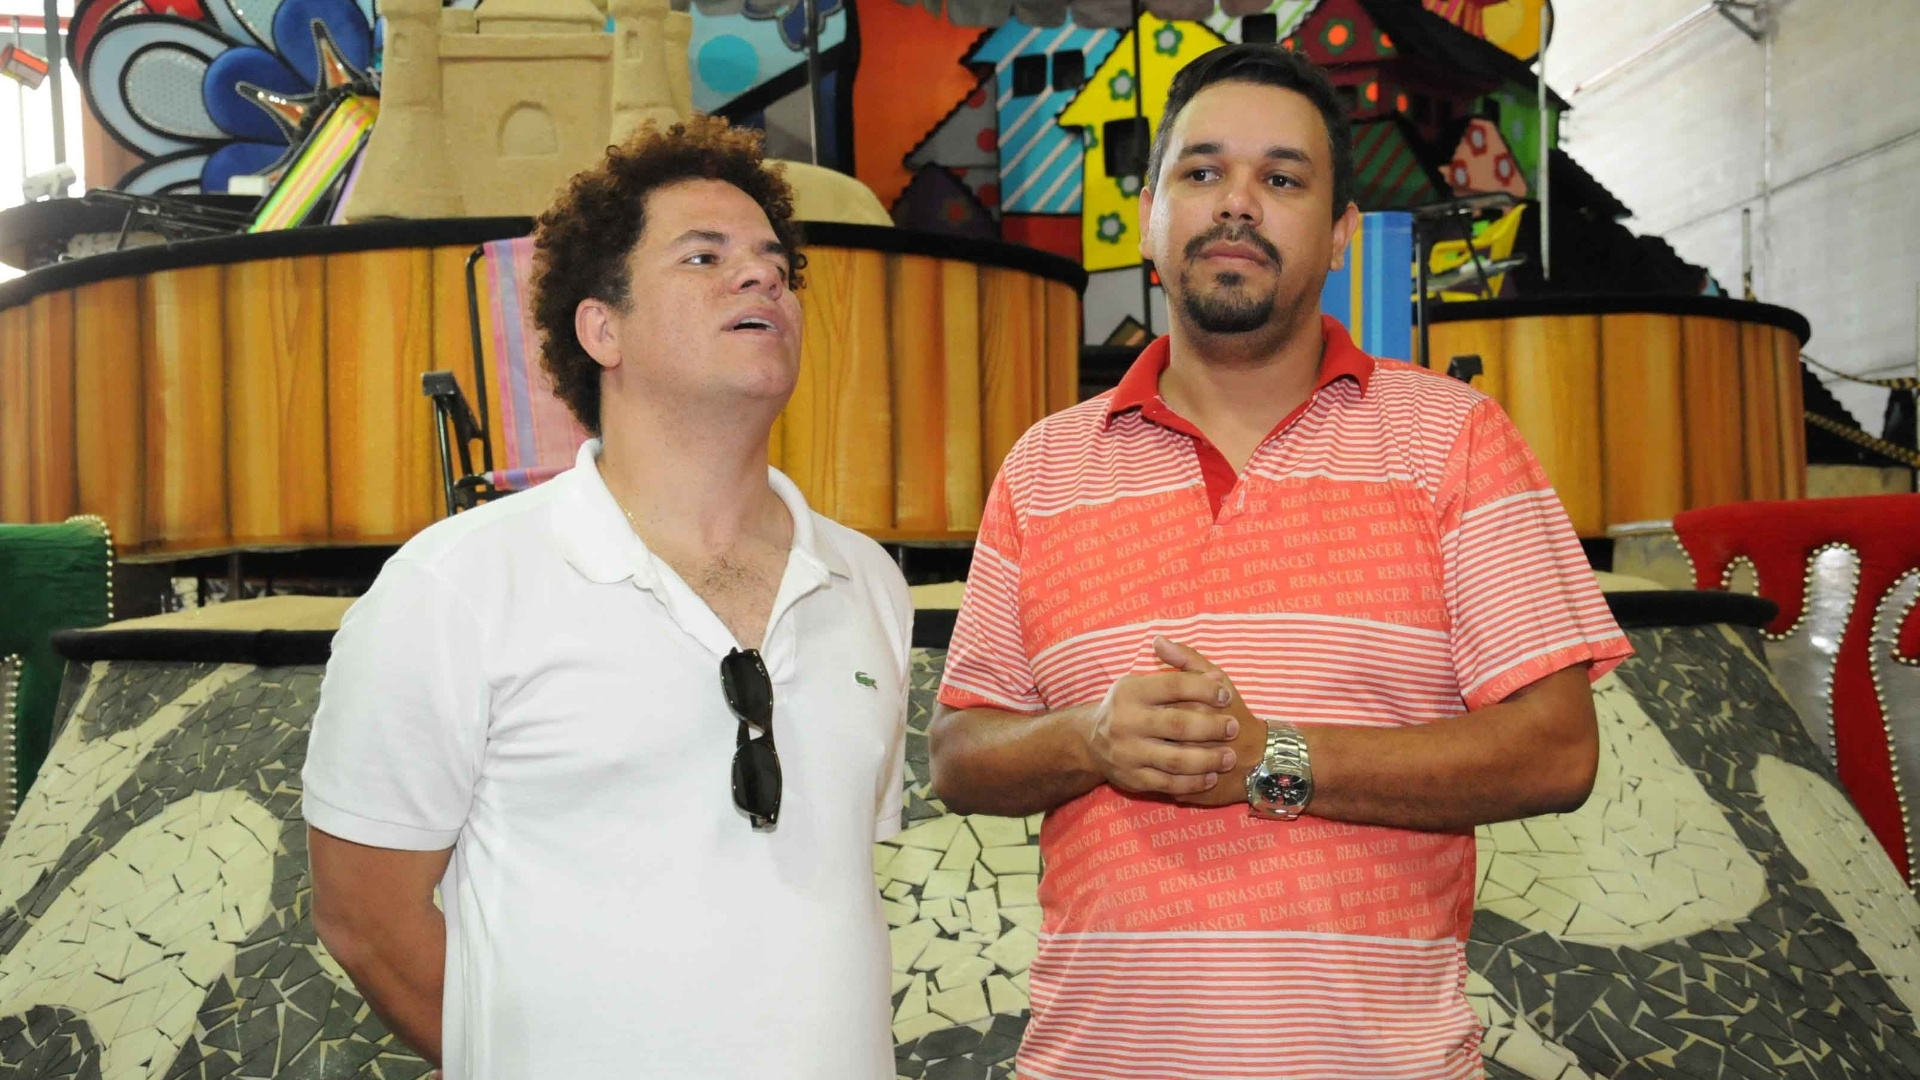 O artista plstico Romero Britto visitou nesta quinta-feira (09/02/12) o barraco da escola de samba carioca Renascer de Jacarepagu. Com o enredo 